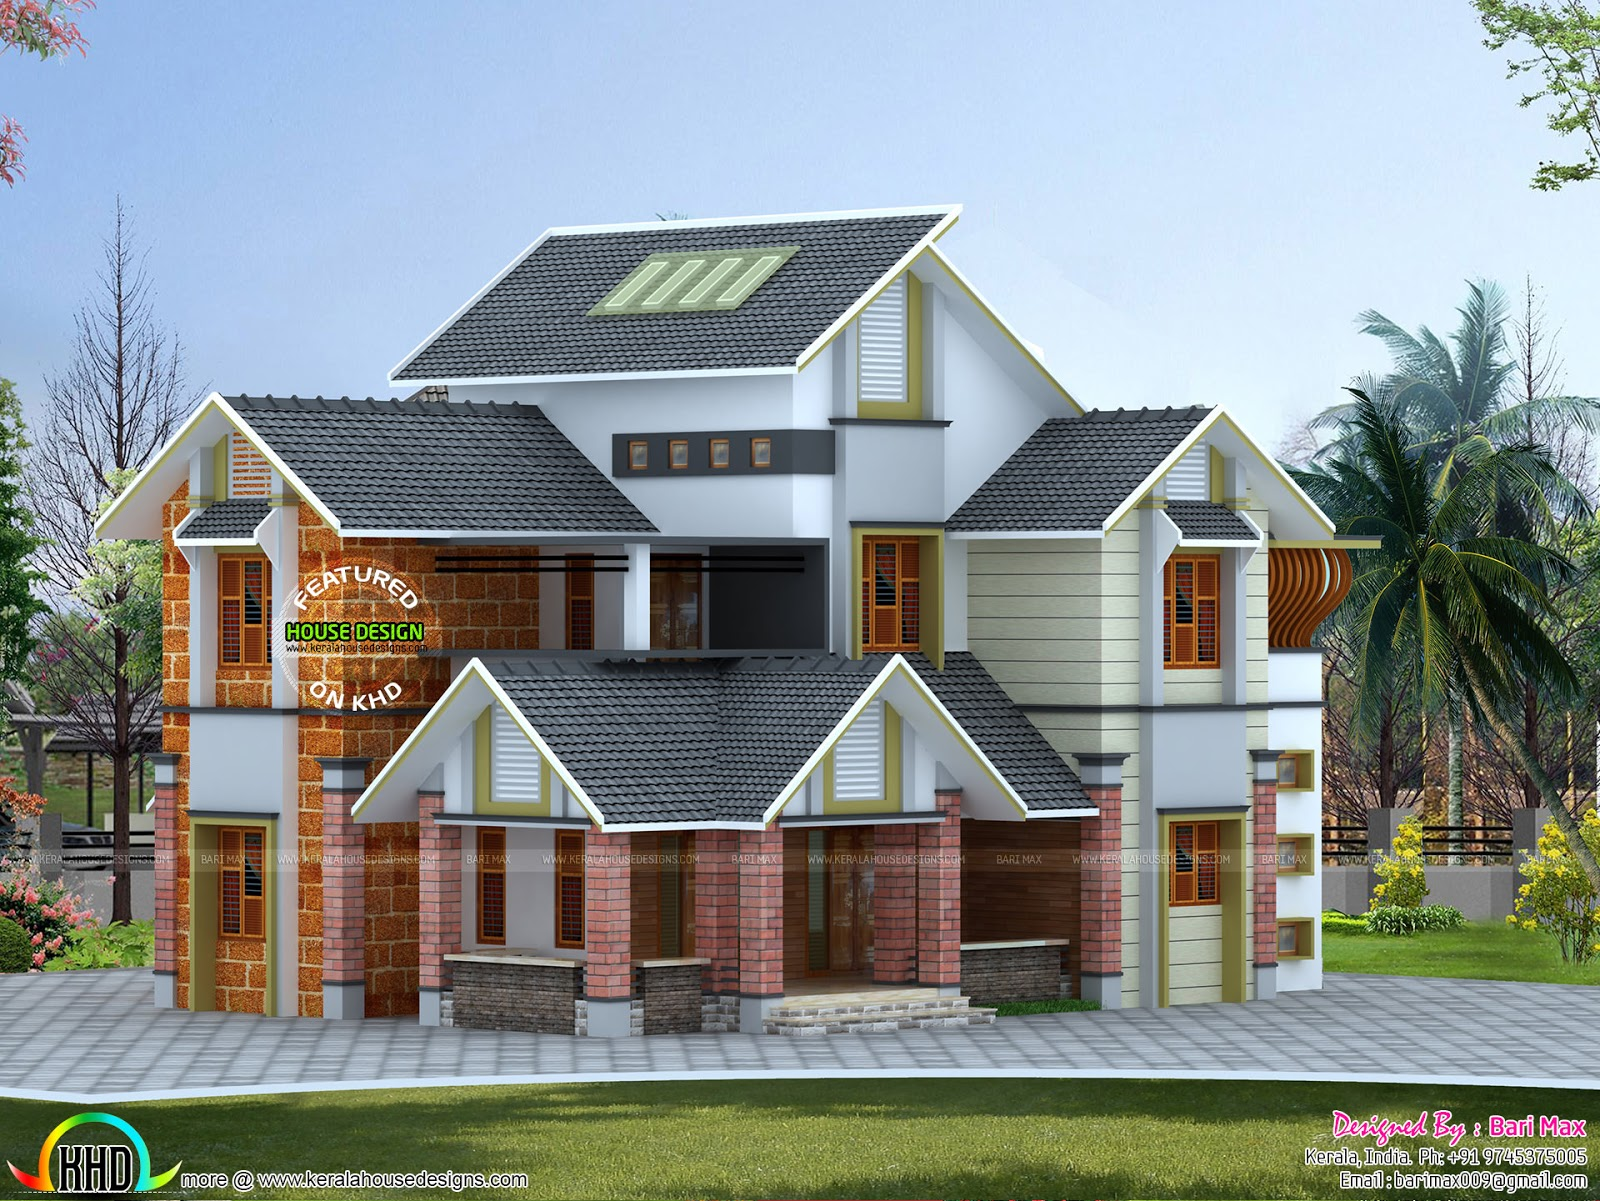 Double height dining hall slop roof house kerala home for House dining hall design